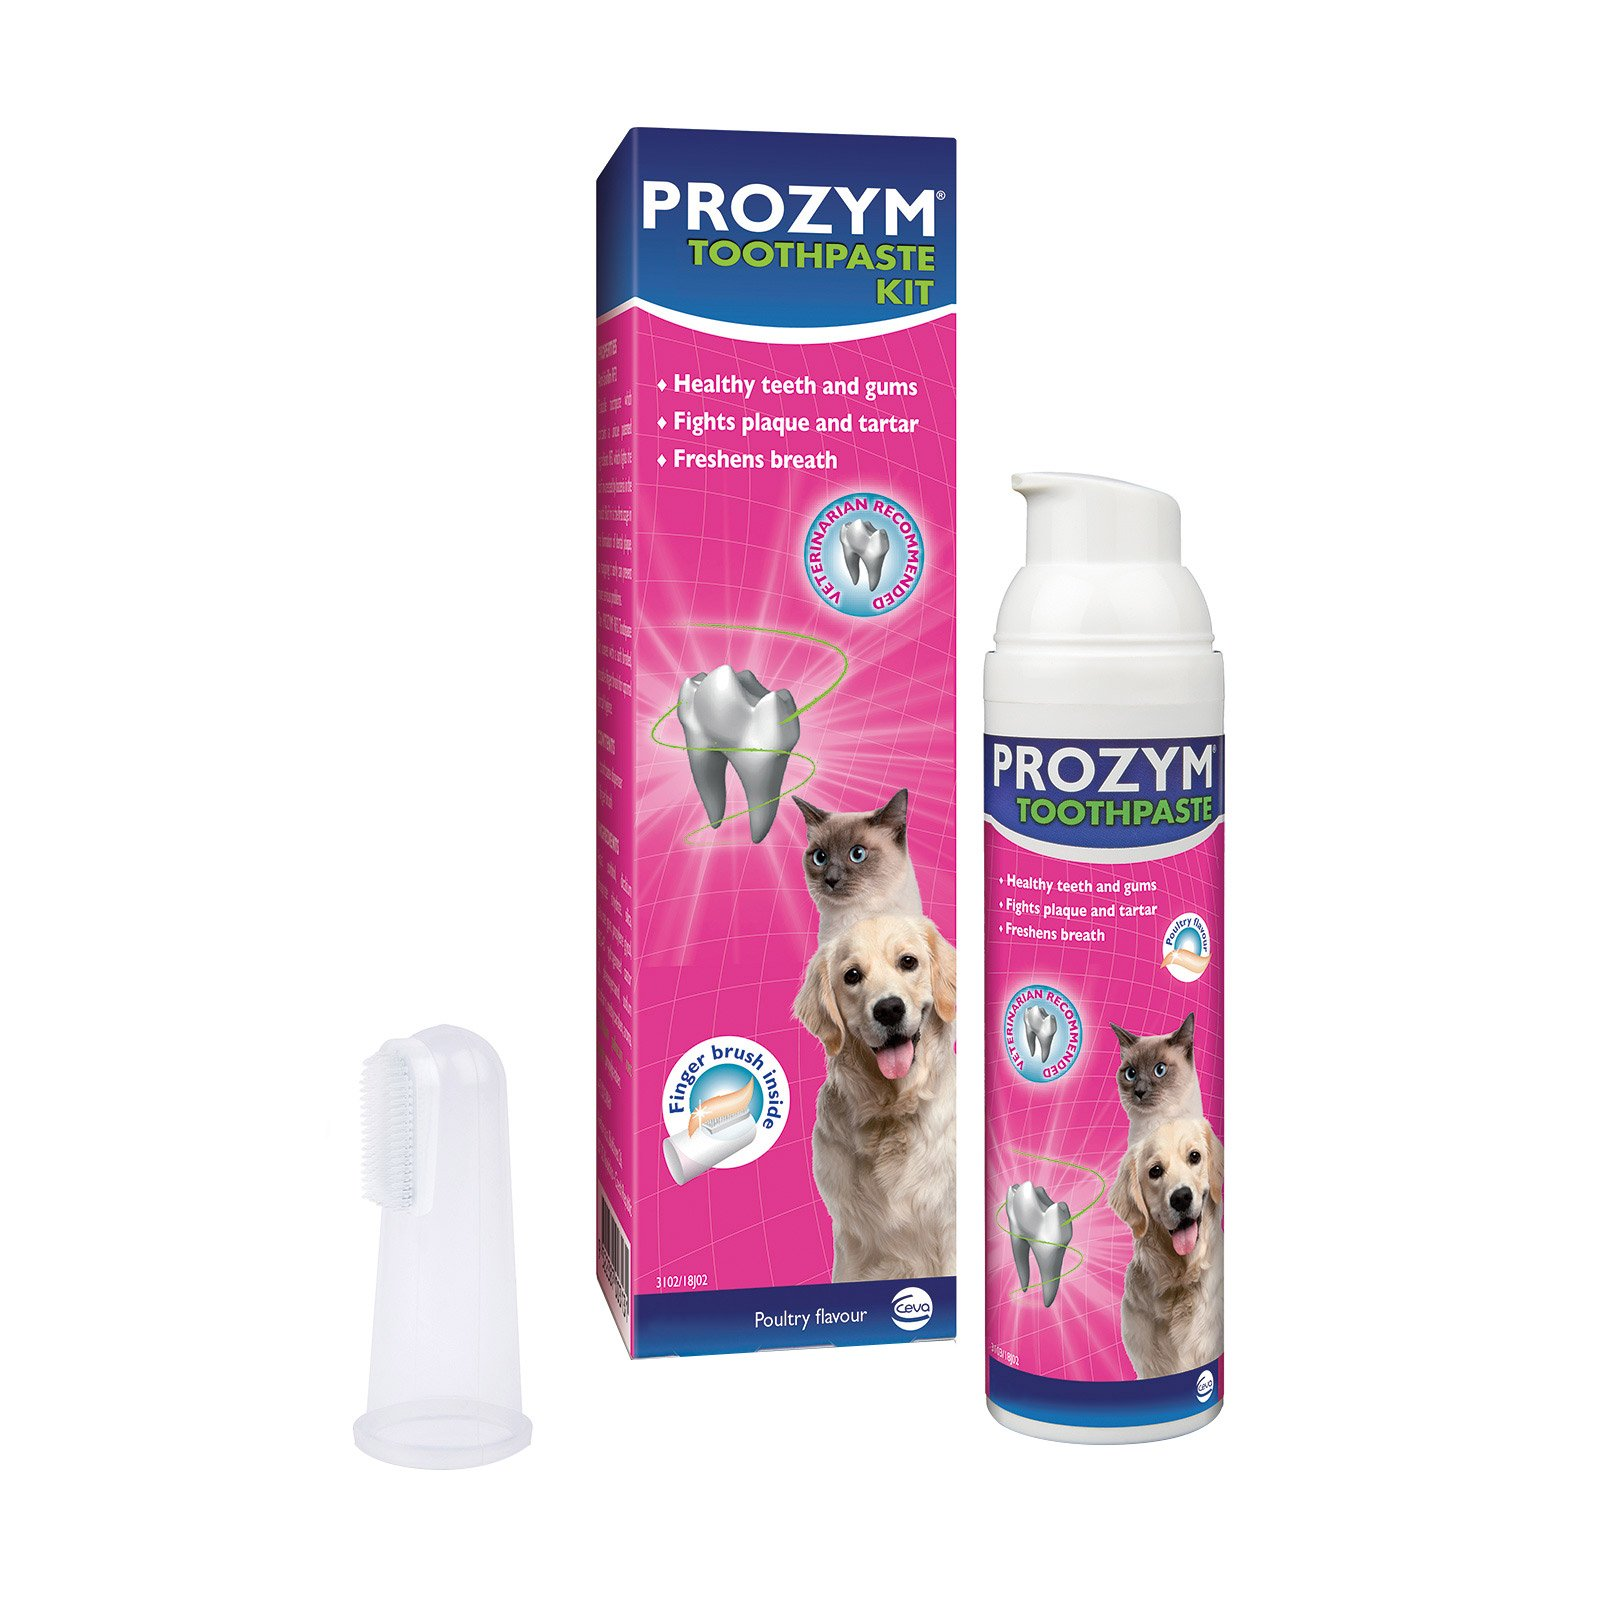 Prozym Dental Toothpaste Kit (Chicken Toothpaste + Fingerbrush)